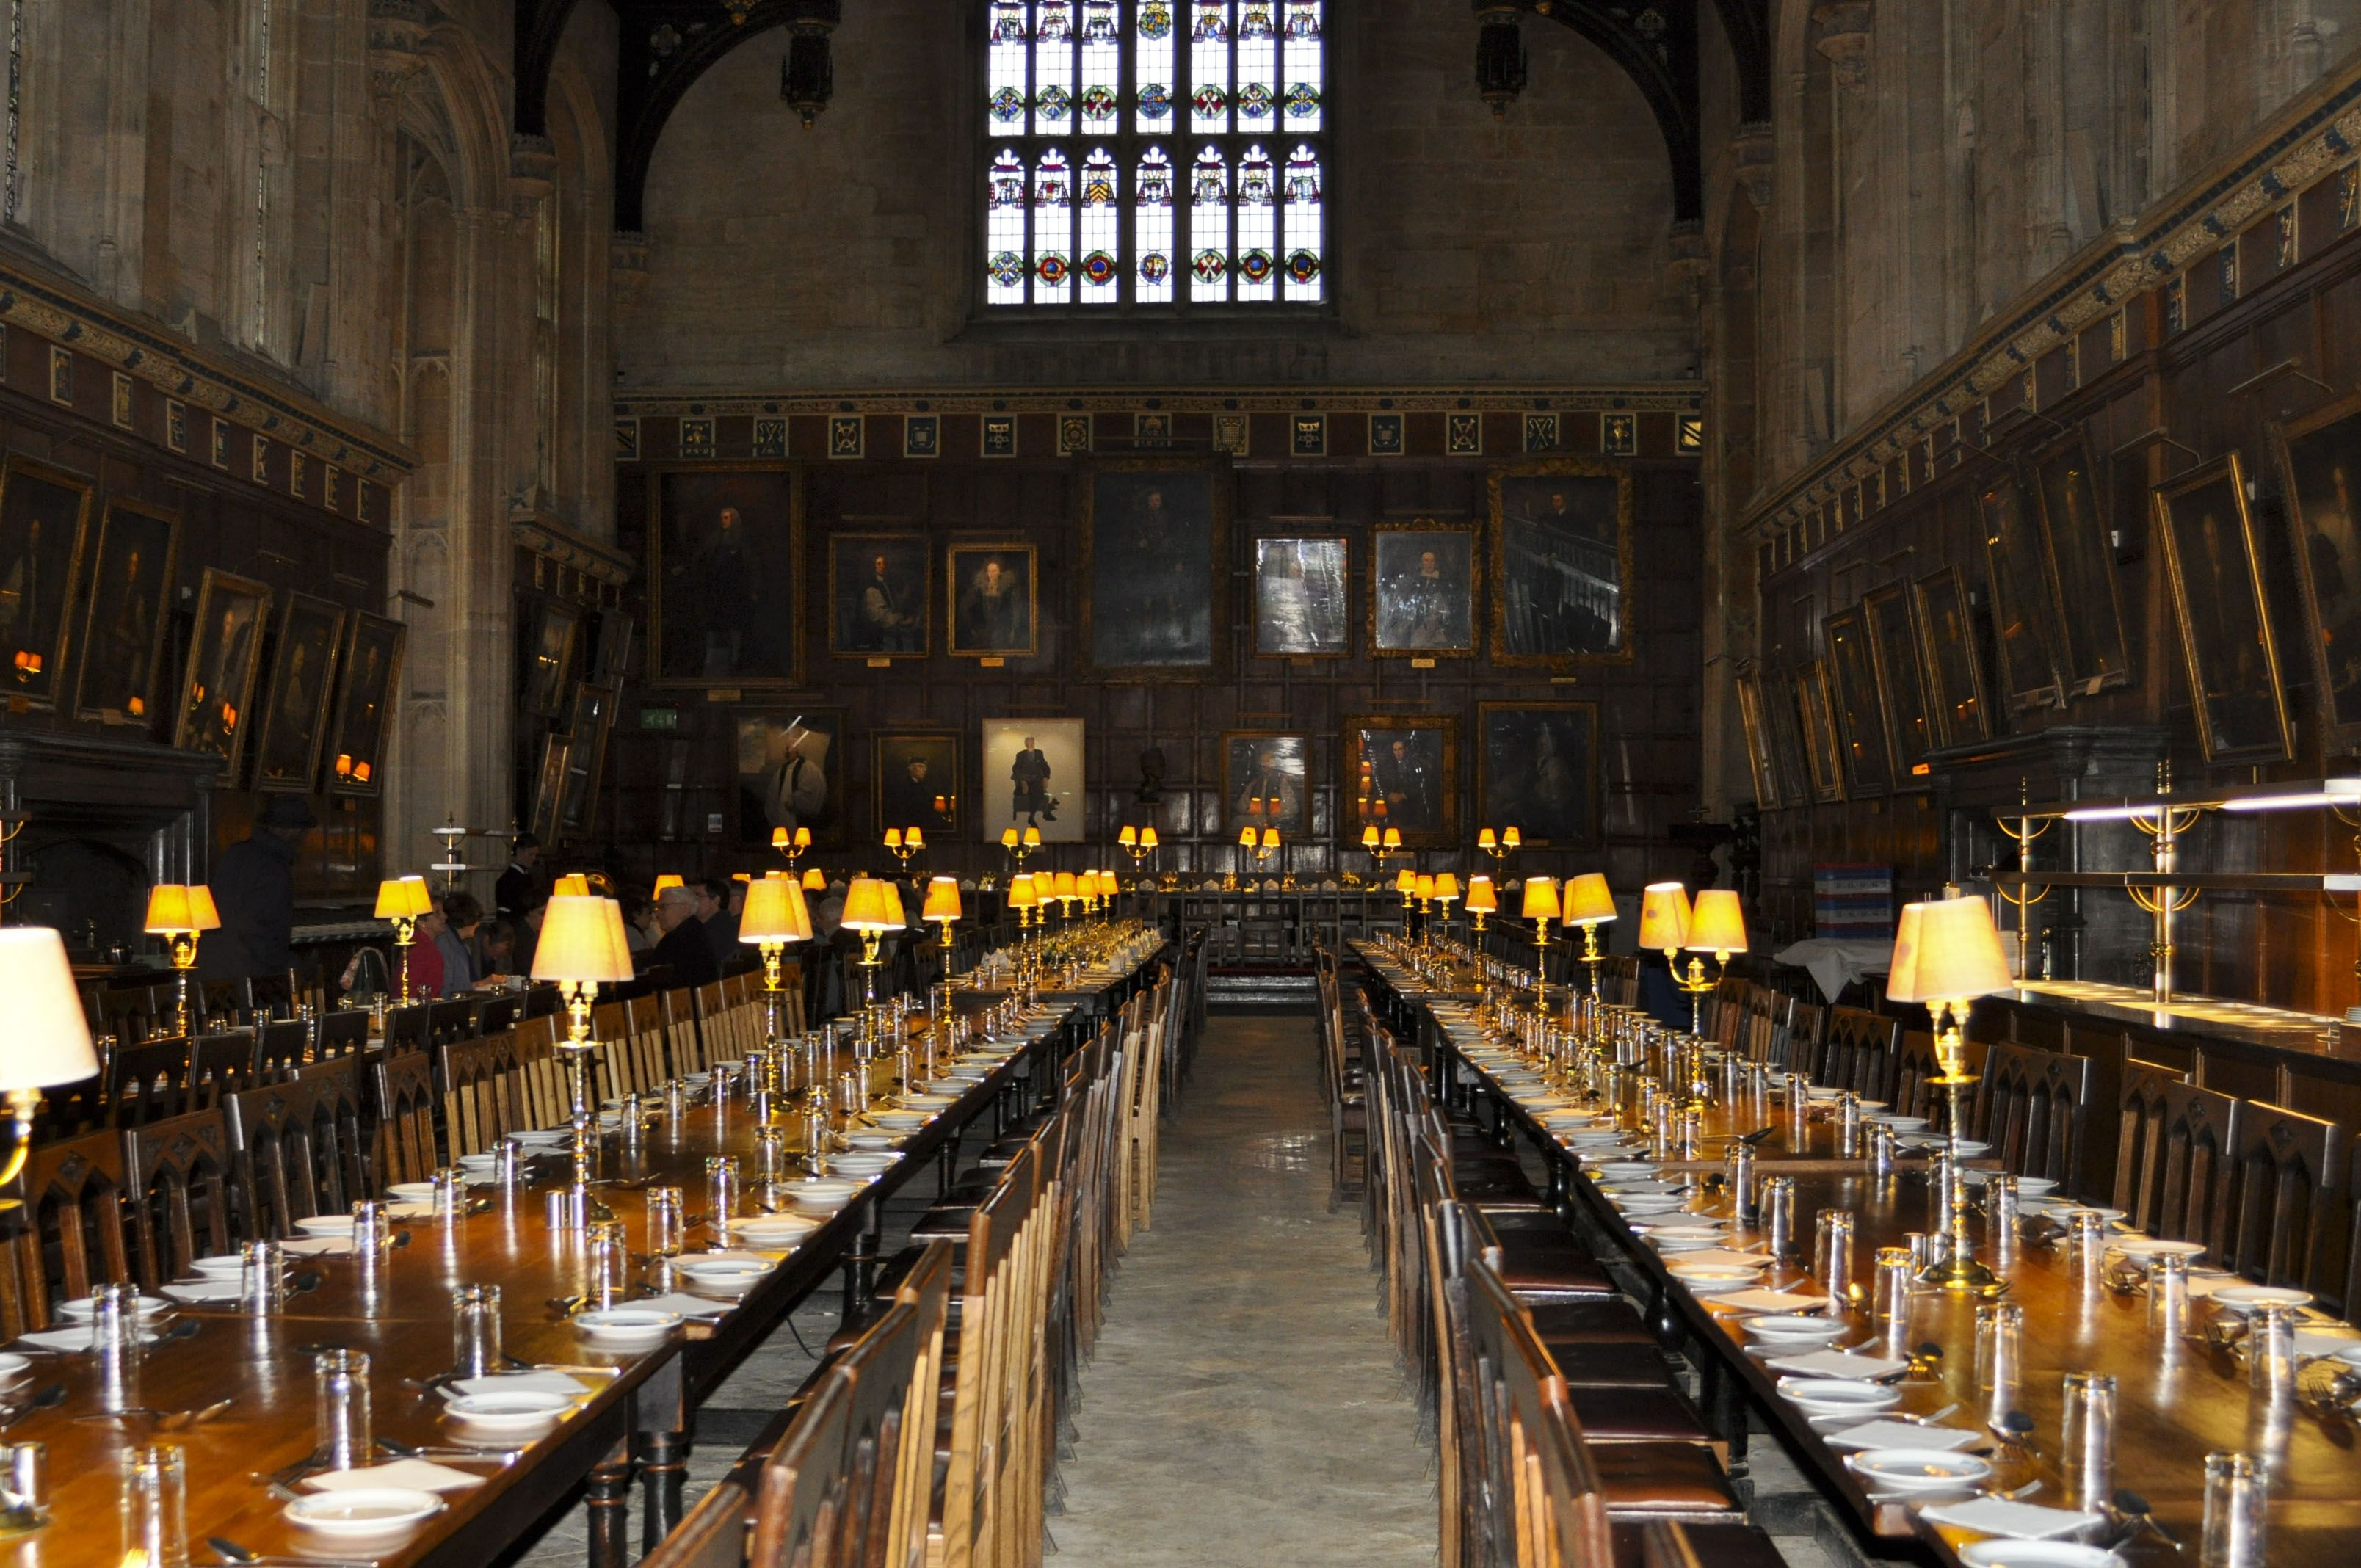 The Great Hall Christ Church College Oxford Not Actually Used As A Set But Was Copied In One Of The Harry Potter Places Harry Potter Travel Movie Locations